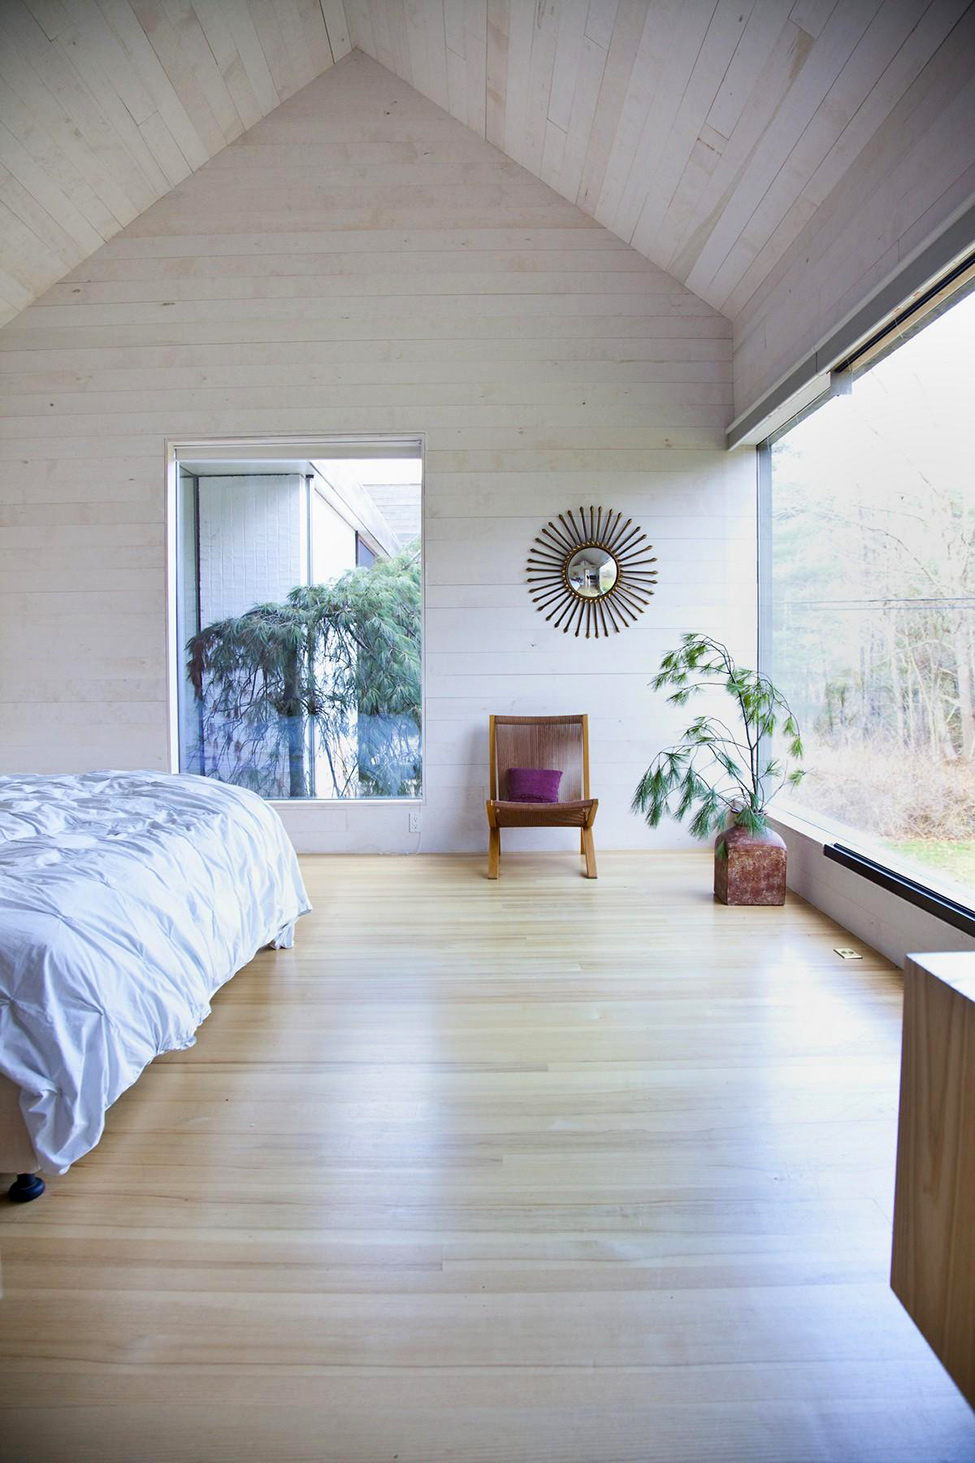 Breezy Bedroom With Wide Glass Windows And High Ceiling Decor Plus Wooden Floor Also Minimalist Design